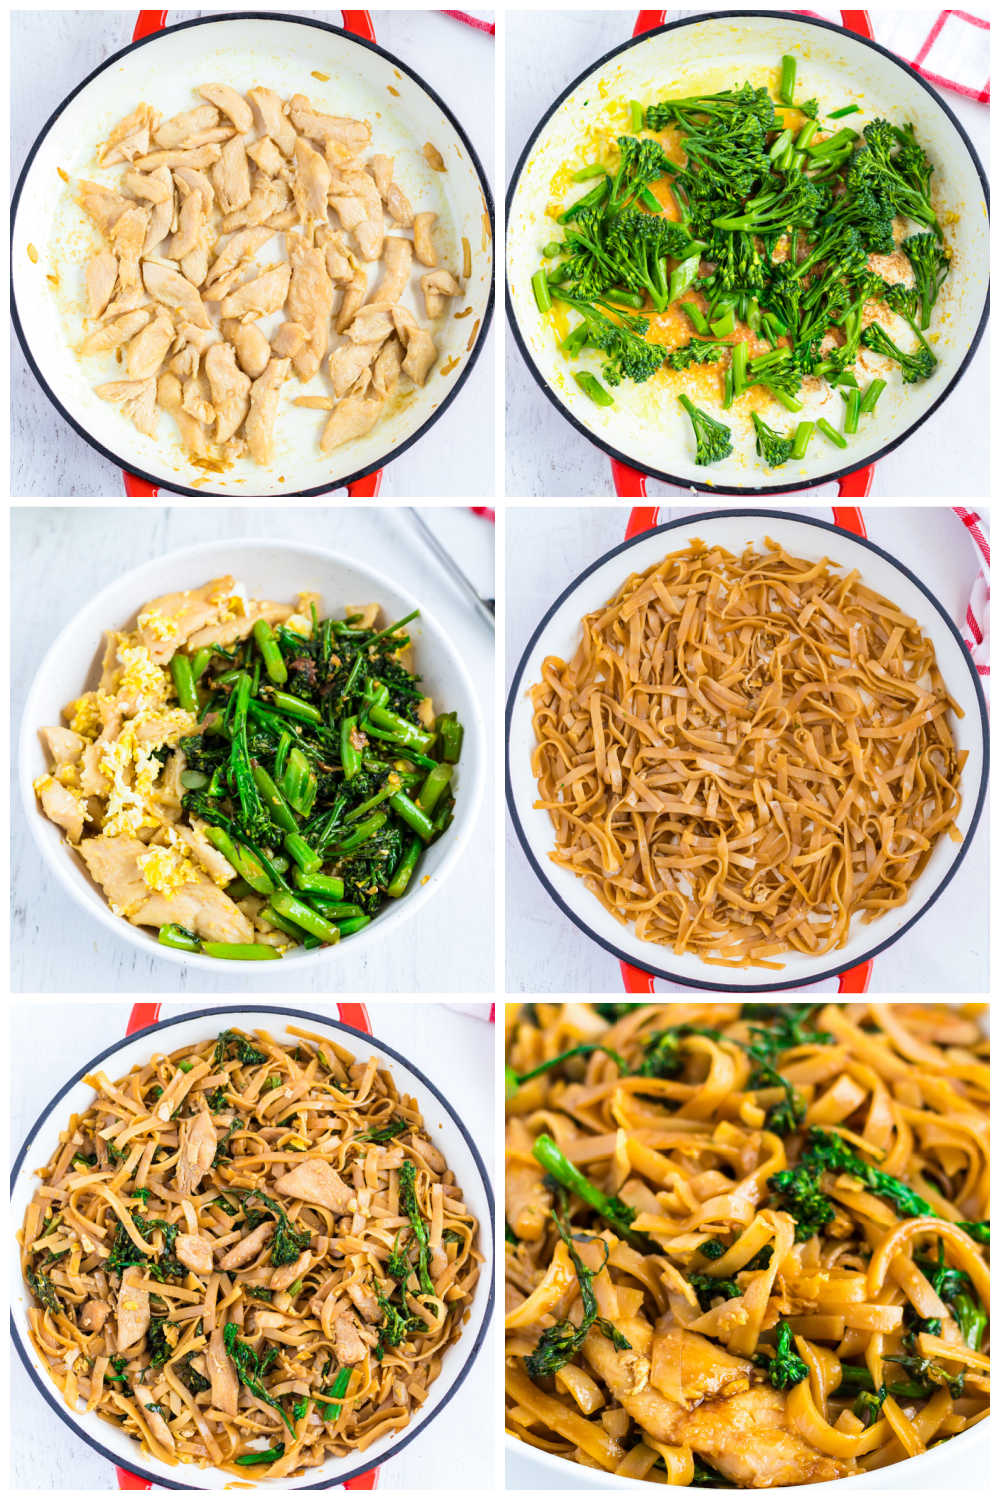 Pad See Ew Noodles is made with Thai rice noodles with chicken, Chinese broccoli, and a sweet and savory sauce. This homemade recipe rivals your favorite Thai restaurant! via @foodfolksandfun